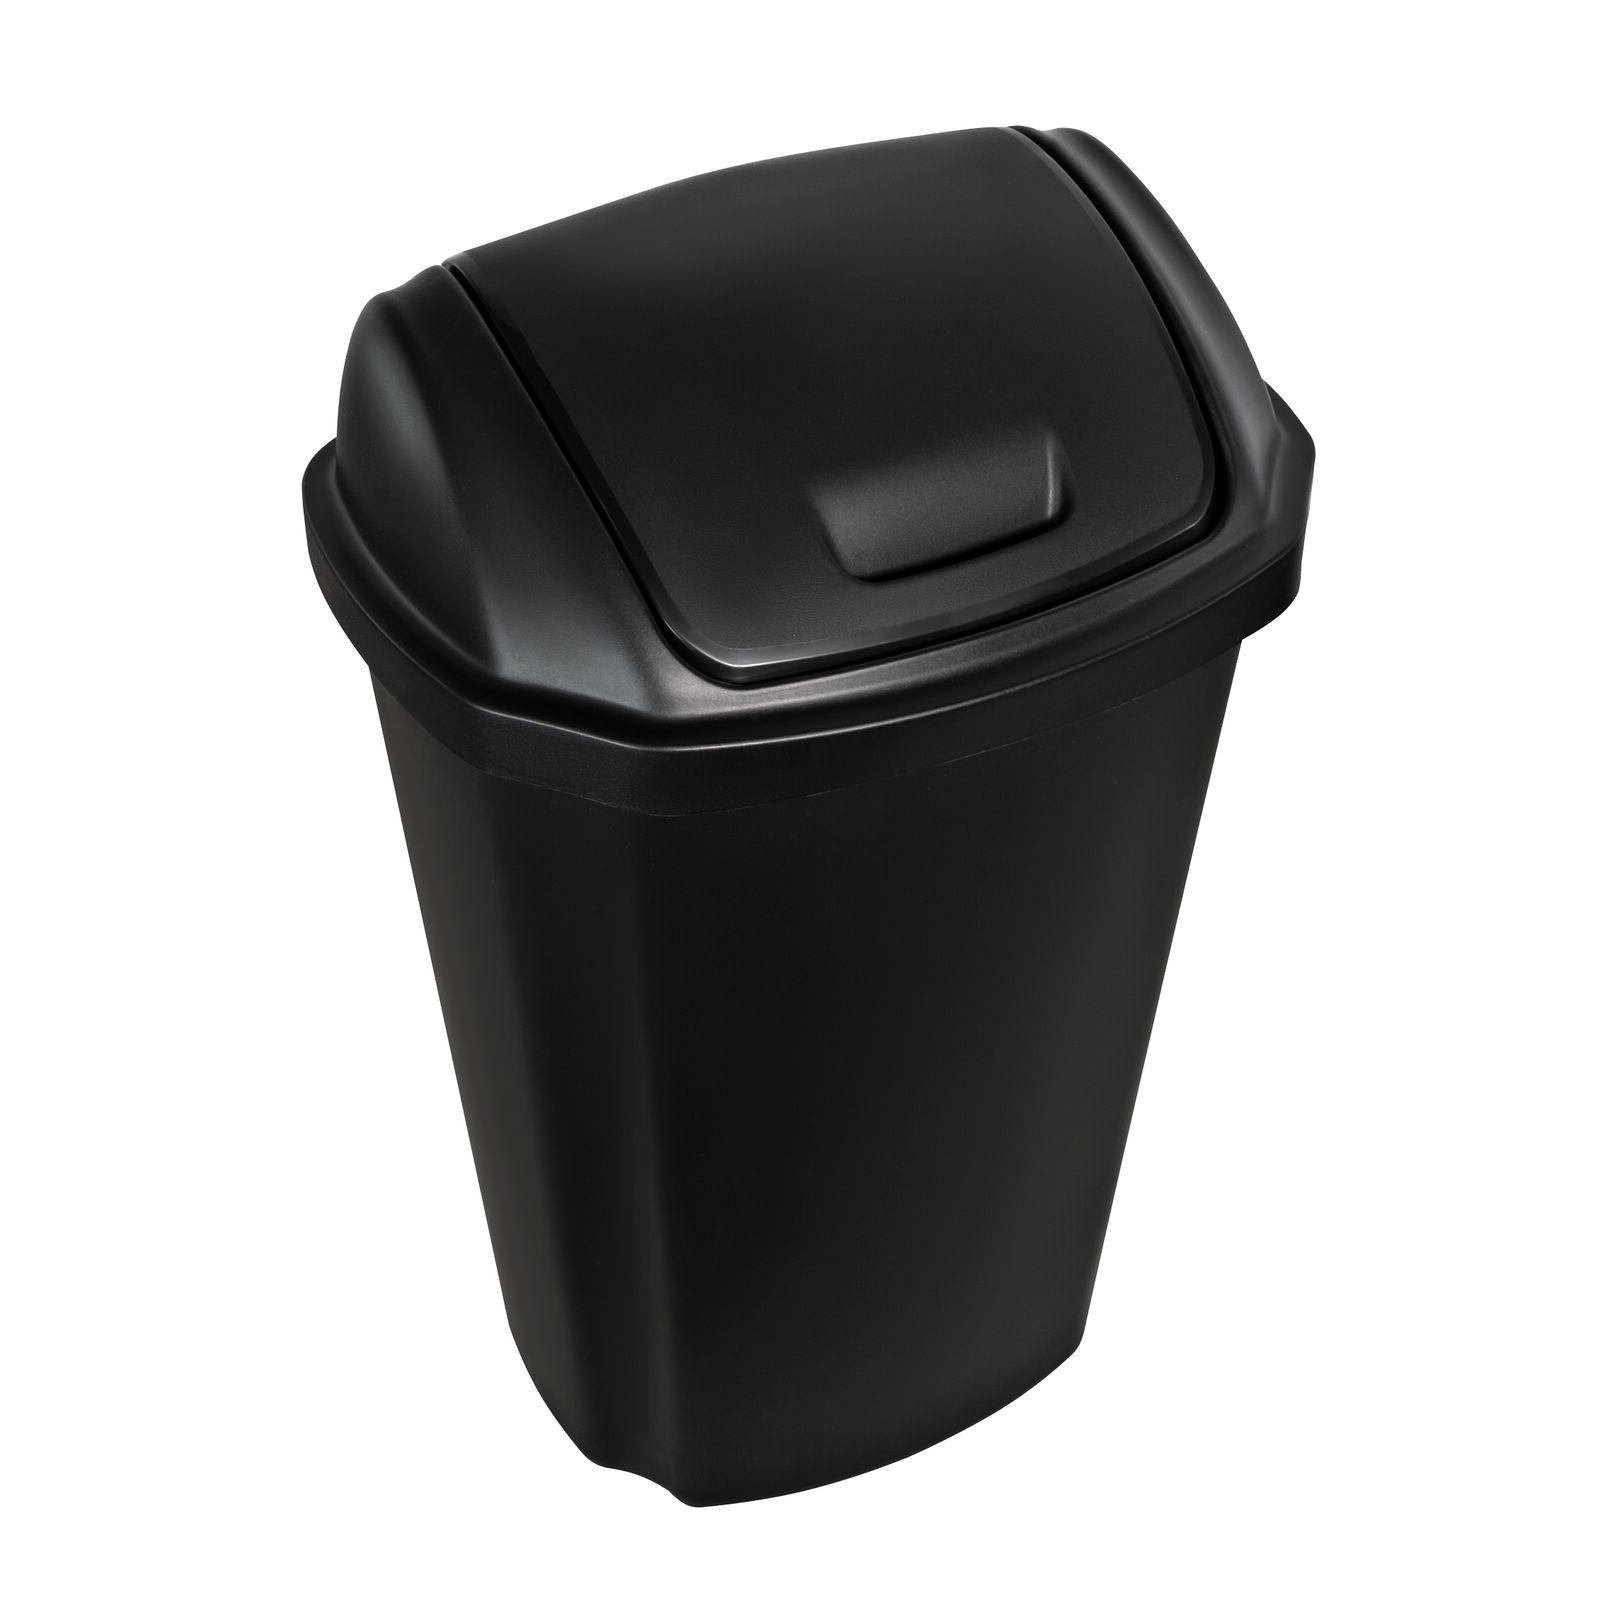 Kitchen Can 13.5 Gal Hefty Swing Lid Black Waste Basket Bin